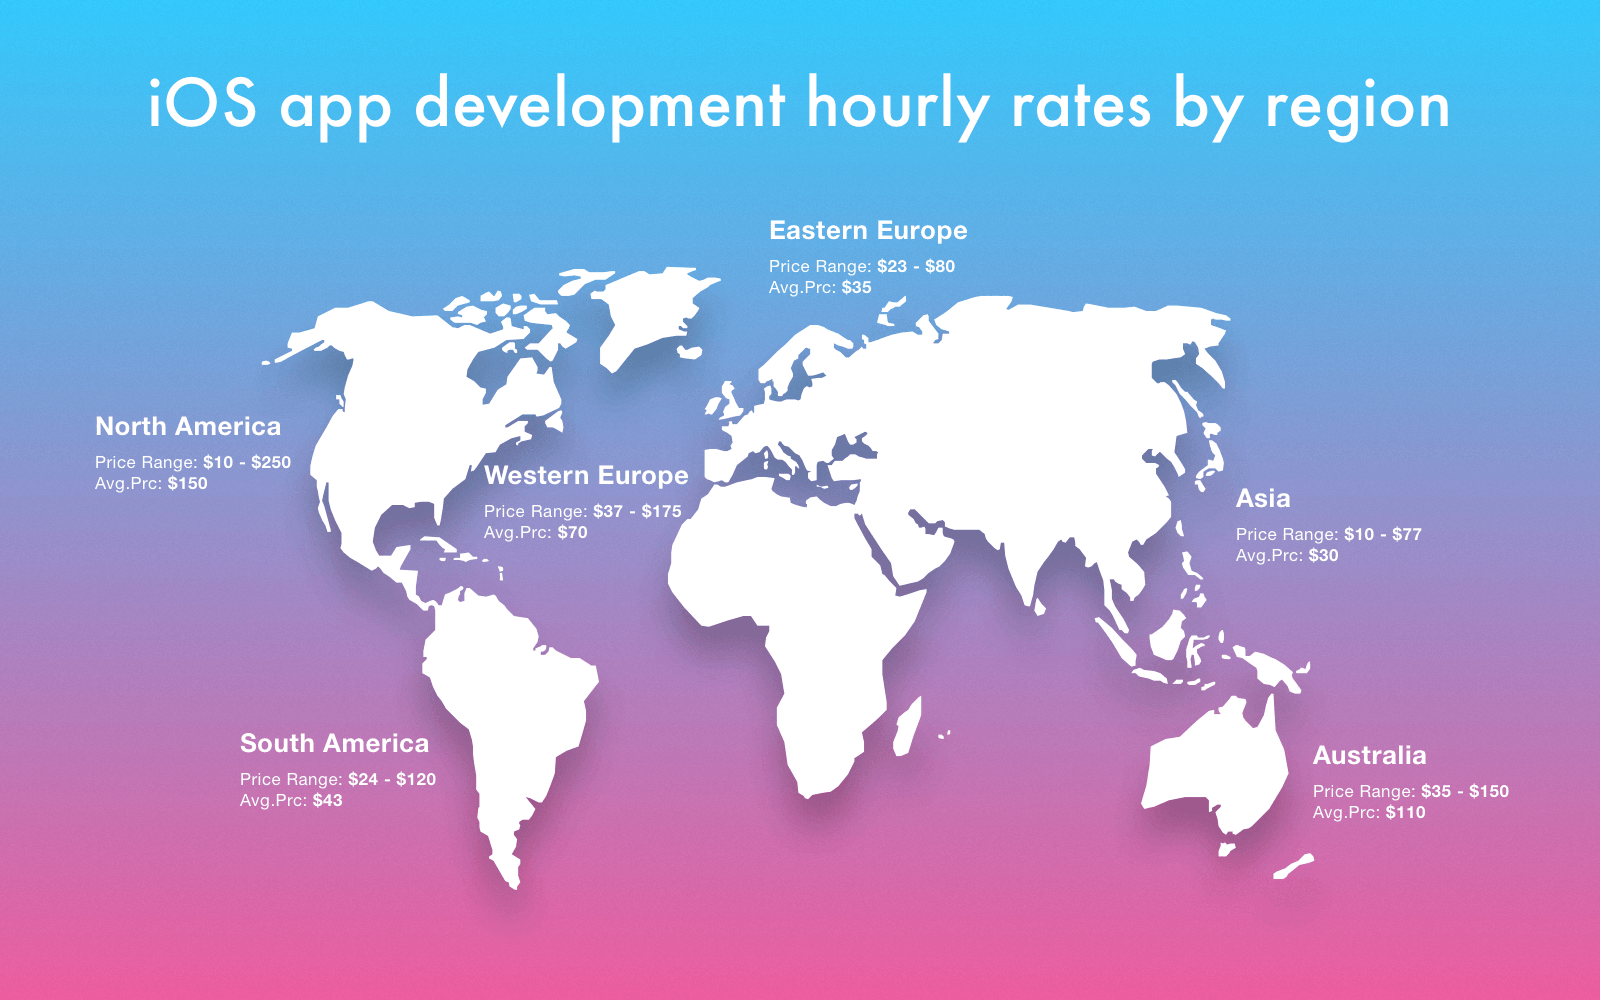 iOS developer salary by region on the world map